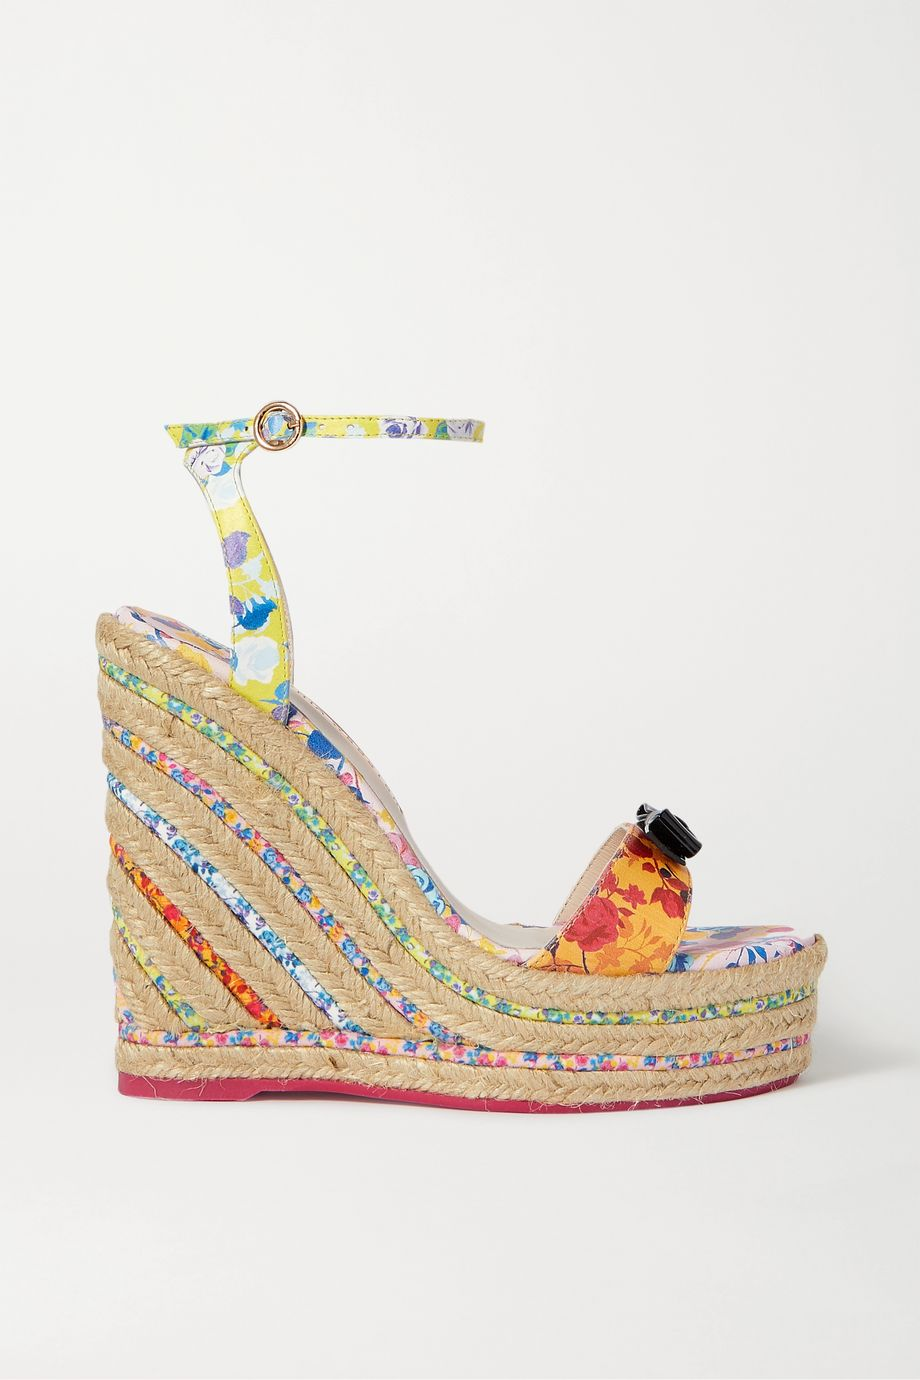 Sophia Webster Laurellie bow-embellished floral-print leather espadrille wedge sandals